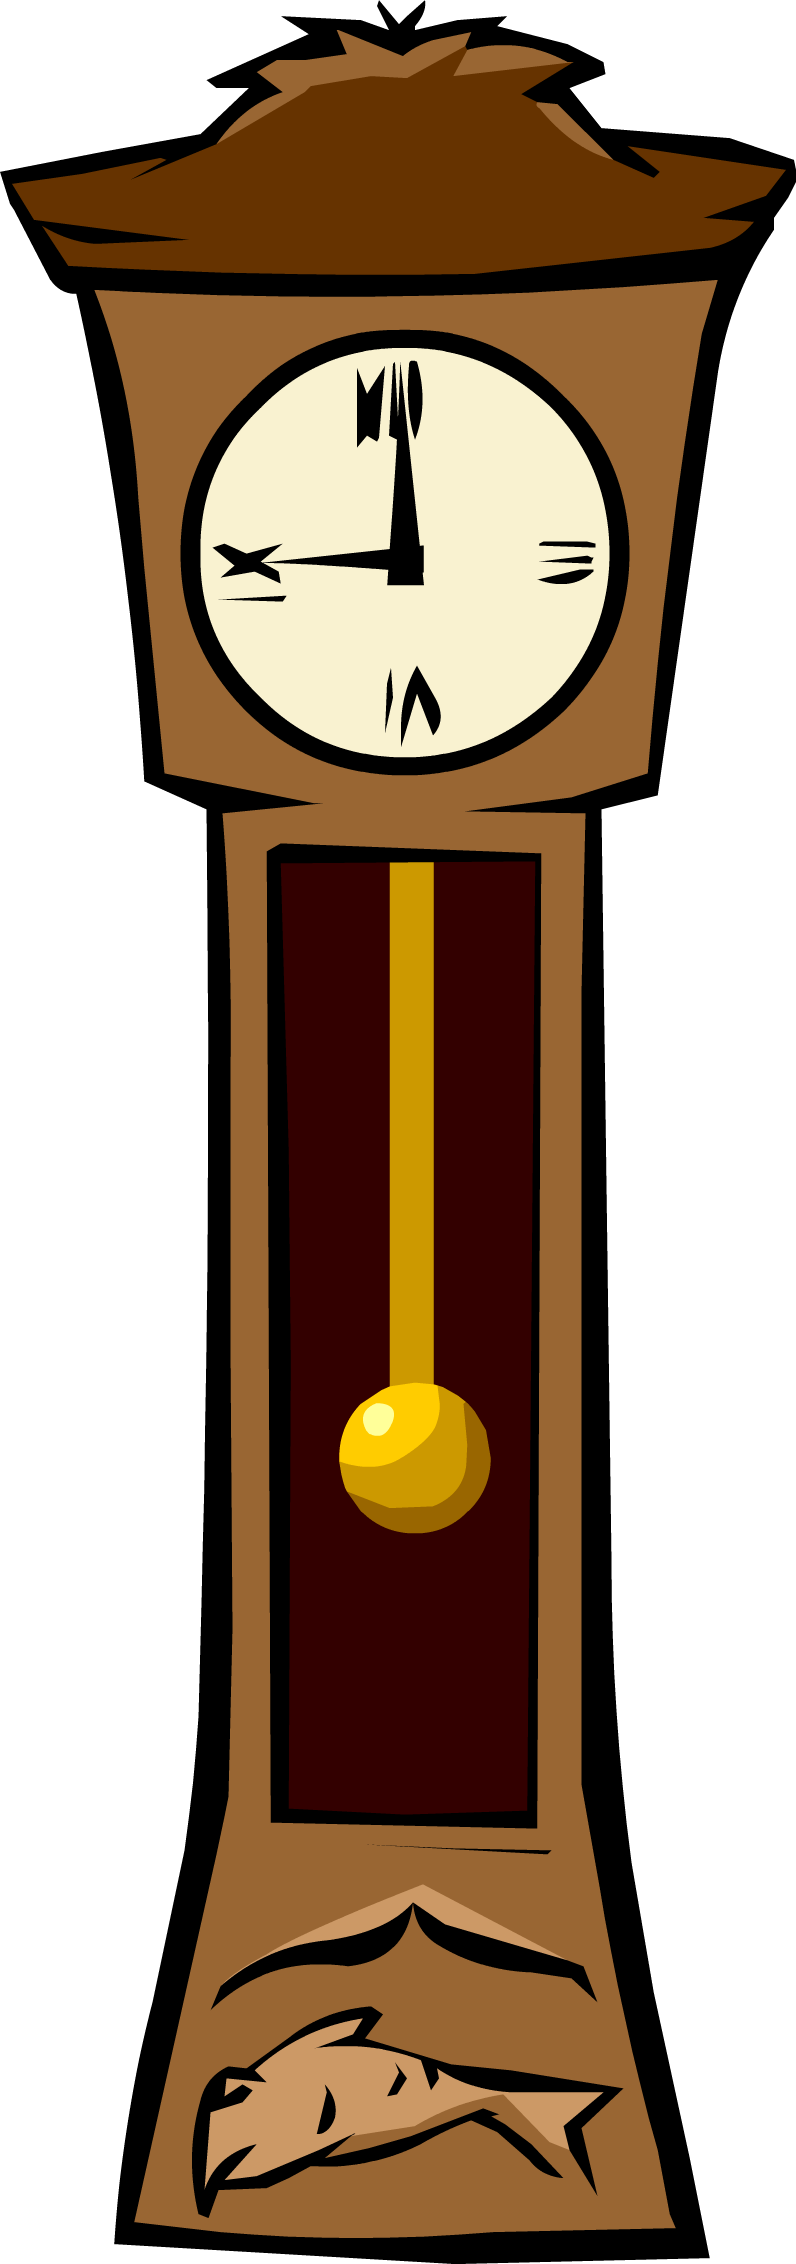 Grandfather clock yahoo search. Nest clipart home